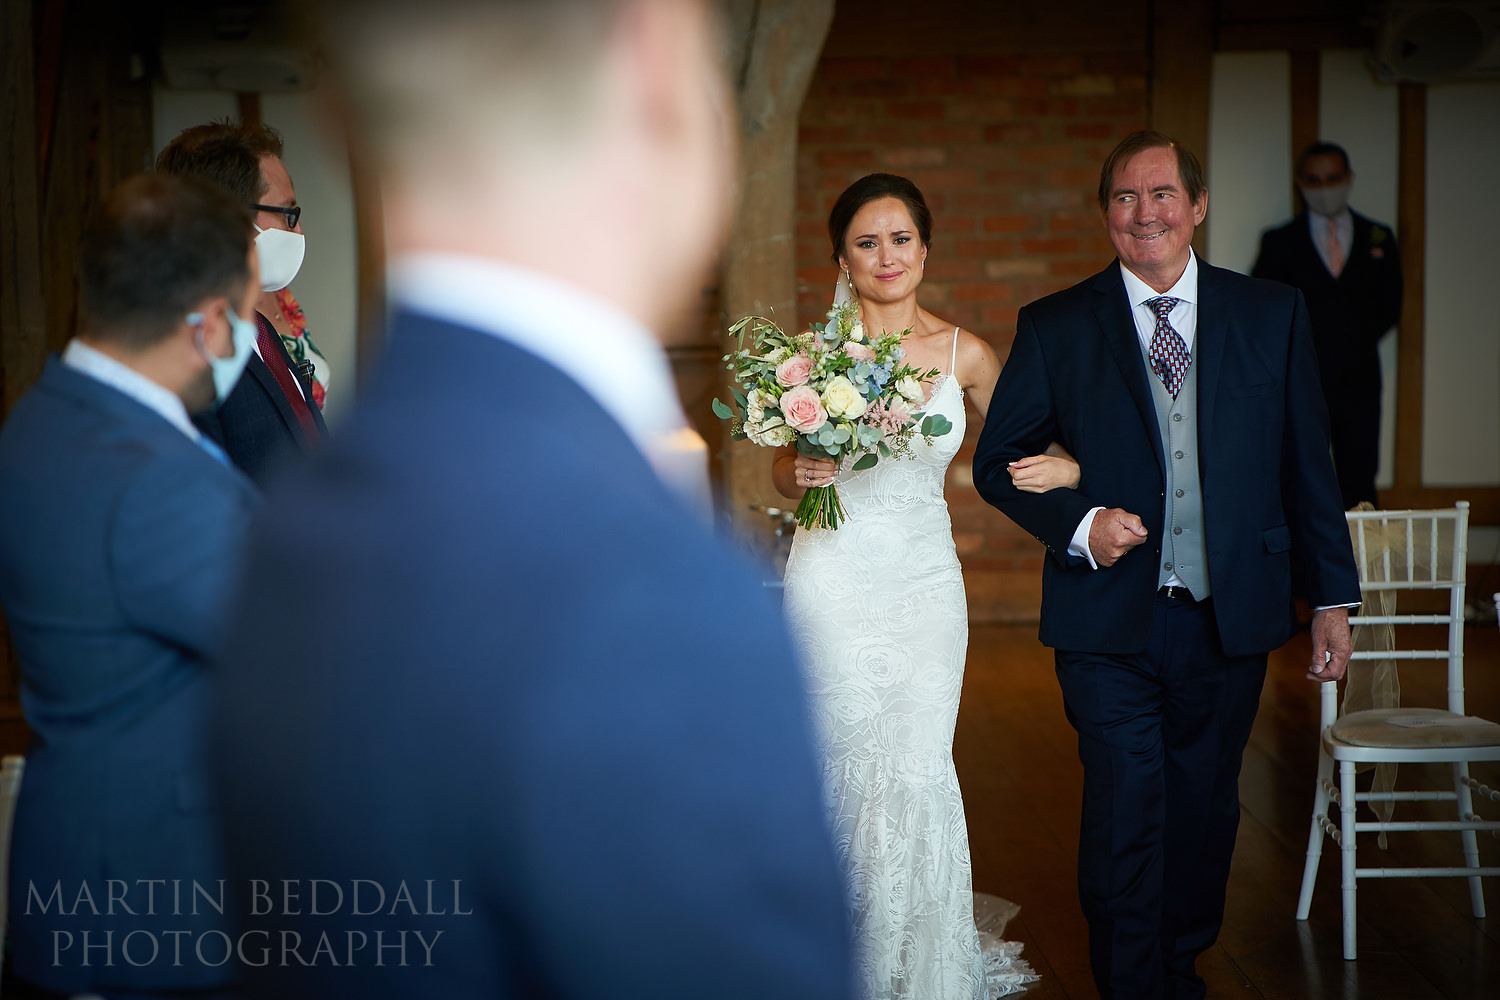 Emotional bride walks down the aisle with her father